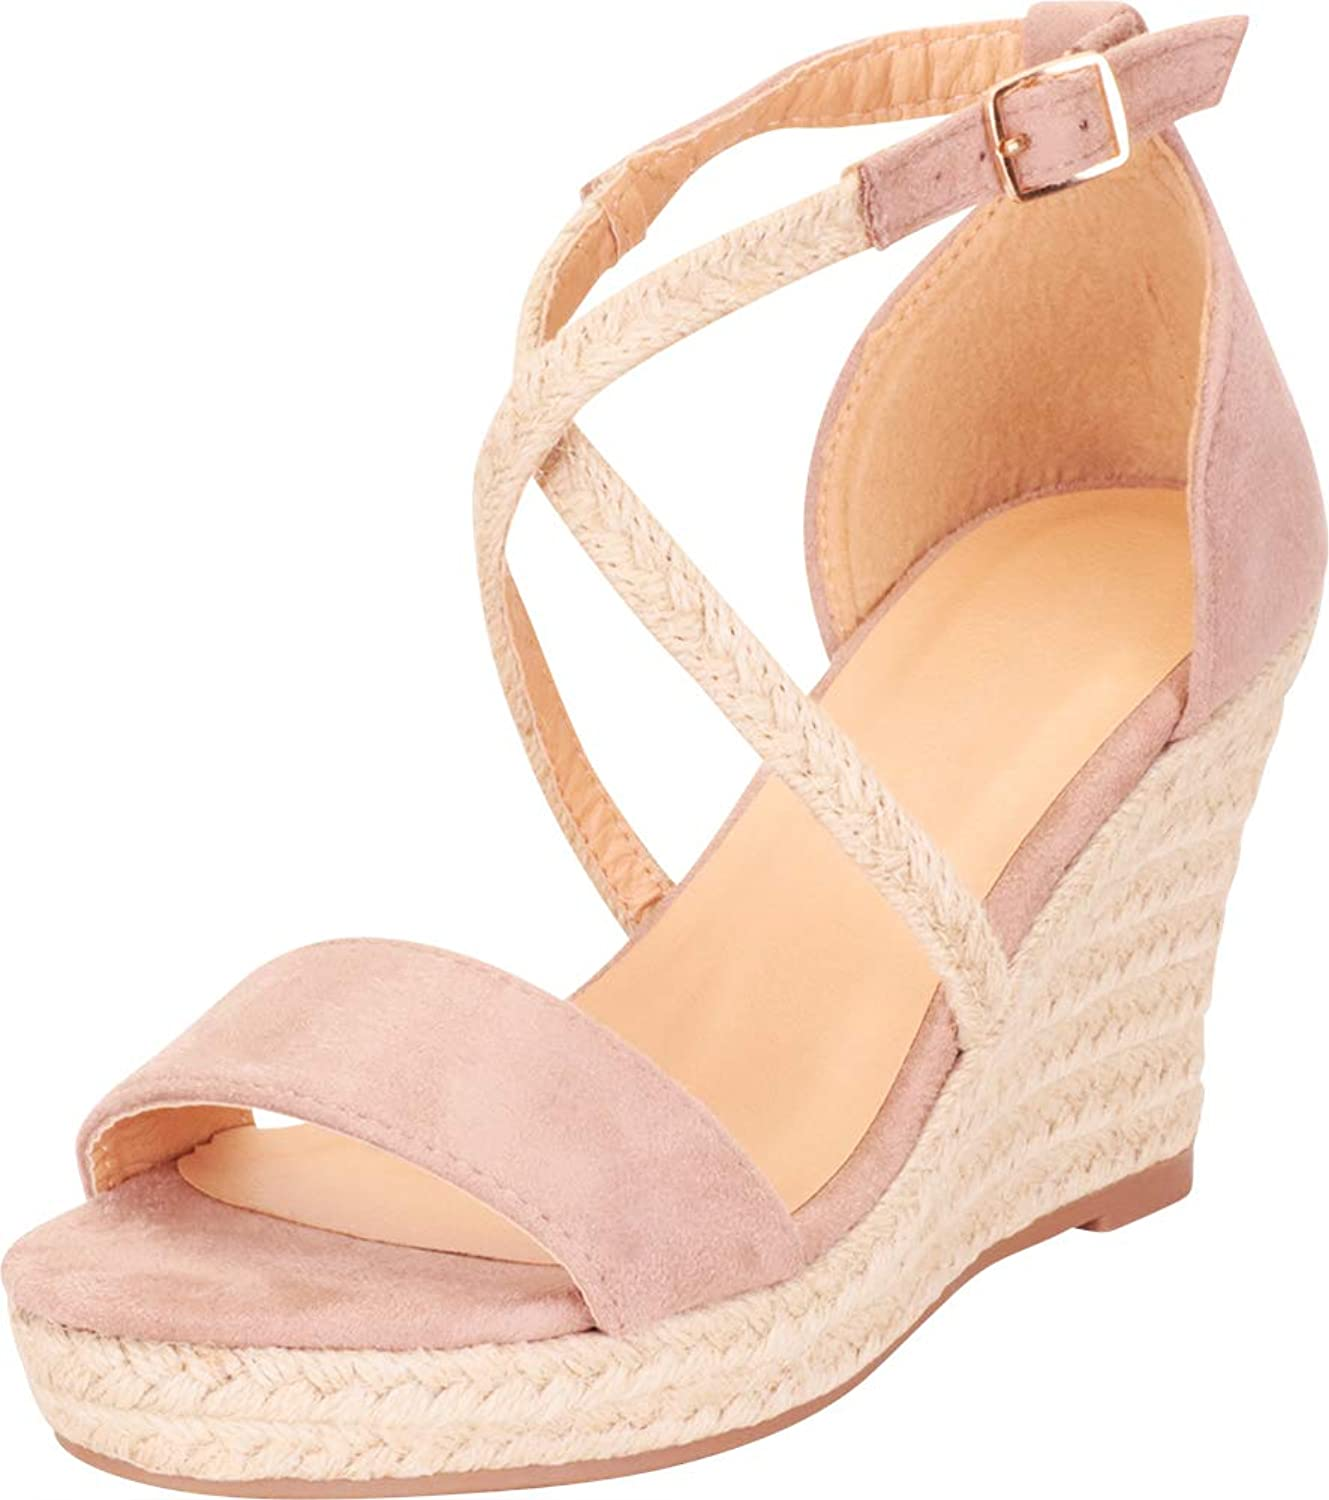 Cambridge Select Women's Crisscross Strappy Espadrille Chunky Platform Wedge Sandal